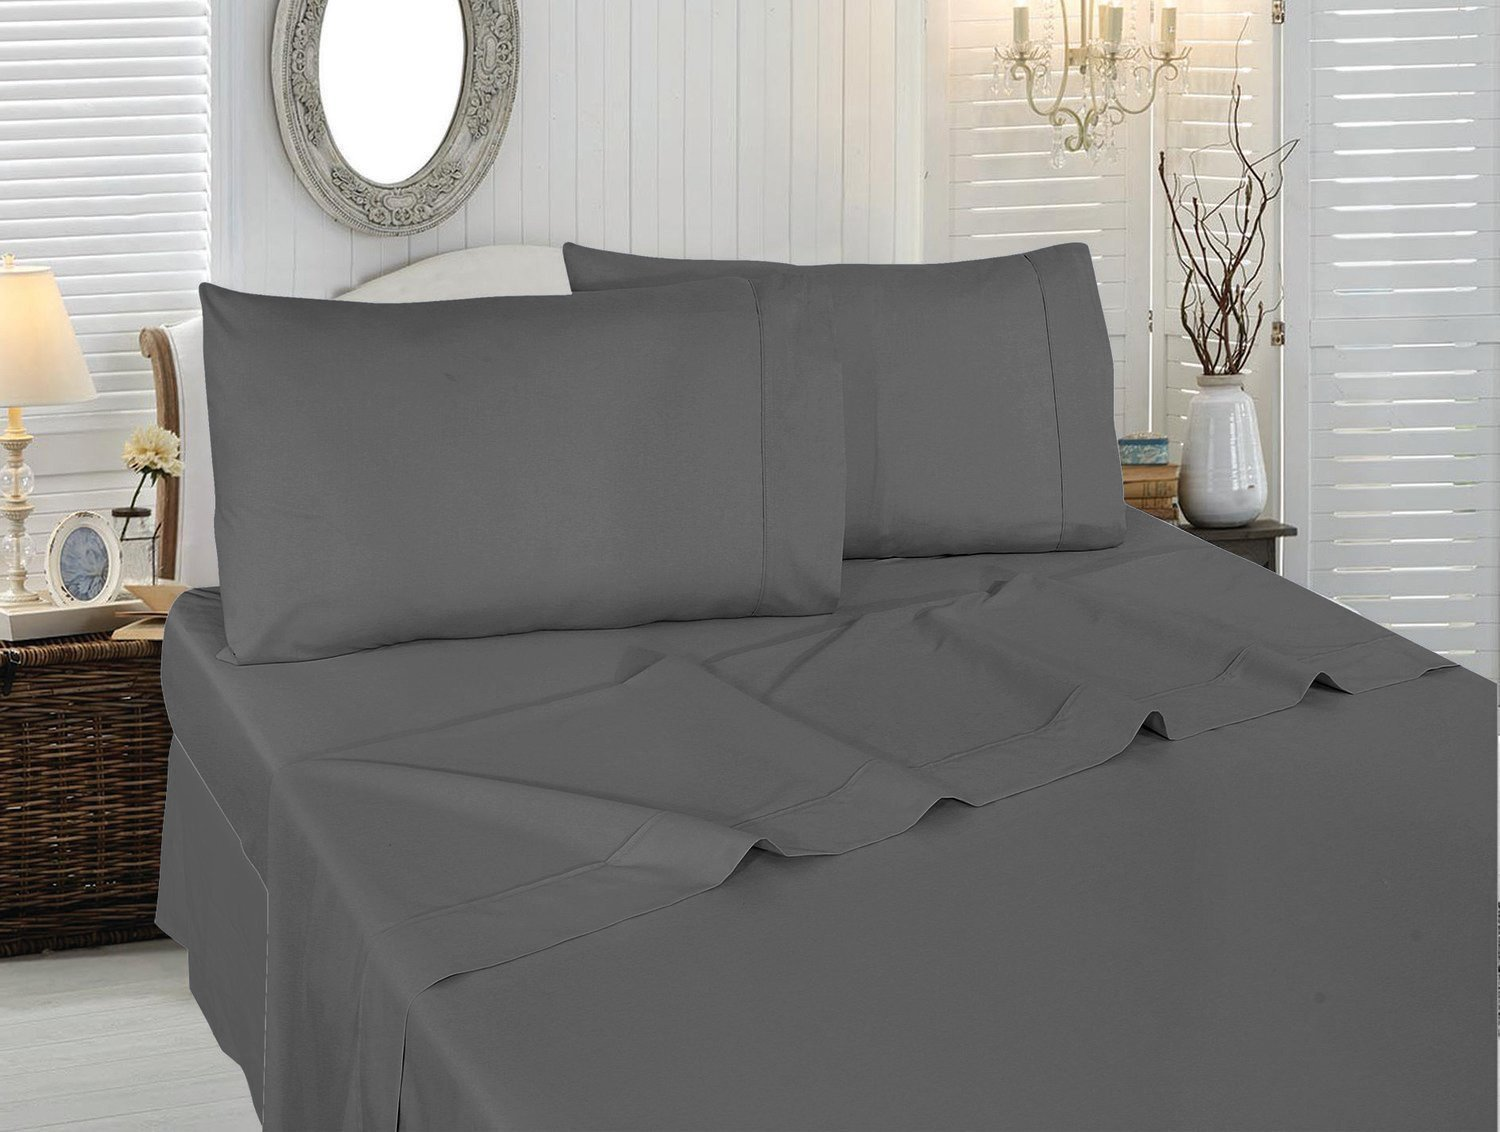 Utopia Bedding Soft Brushed Microfiber Wrinkle Fade and Stain Resistant 4-Piece King Bed Sheet Set - Grey